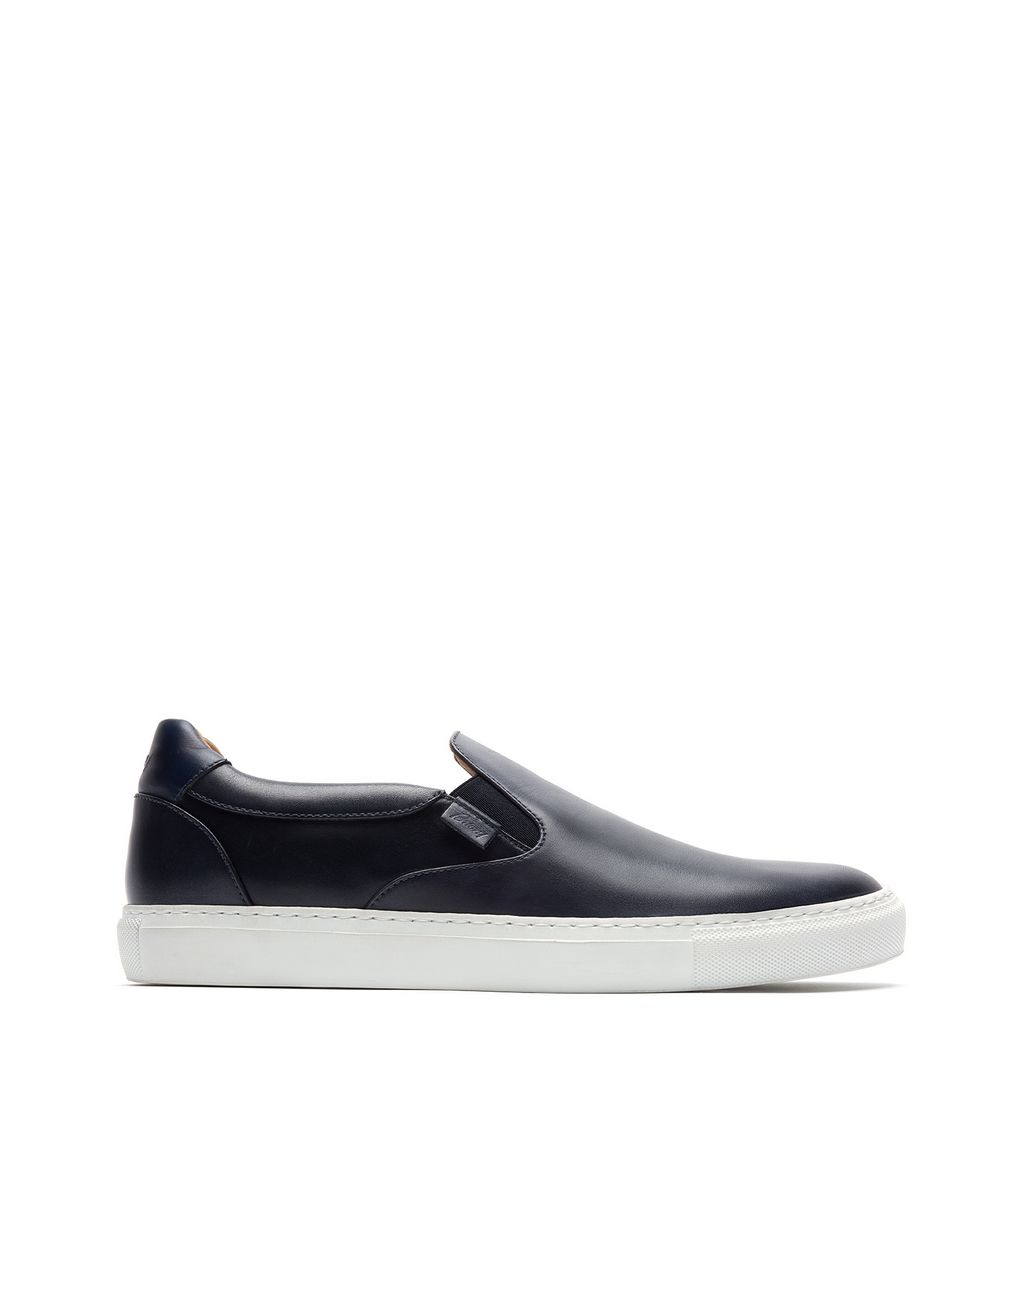 BRIONI Navy-Blue Slip-on Sneaker Sneakers [*** pickupInStoreShippingNotGuaranteed_info ***] f